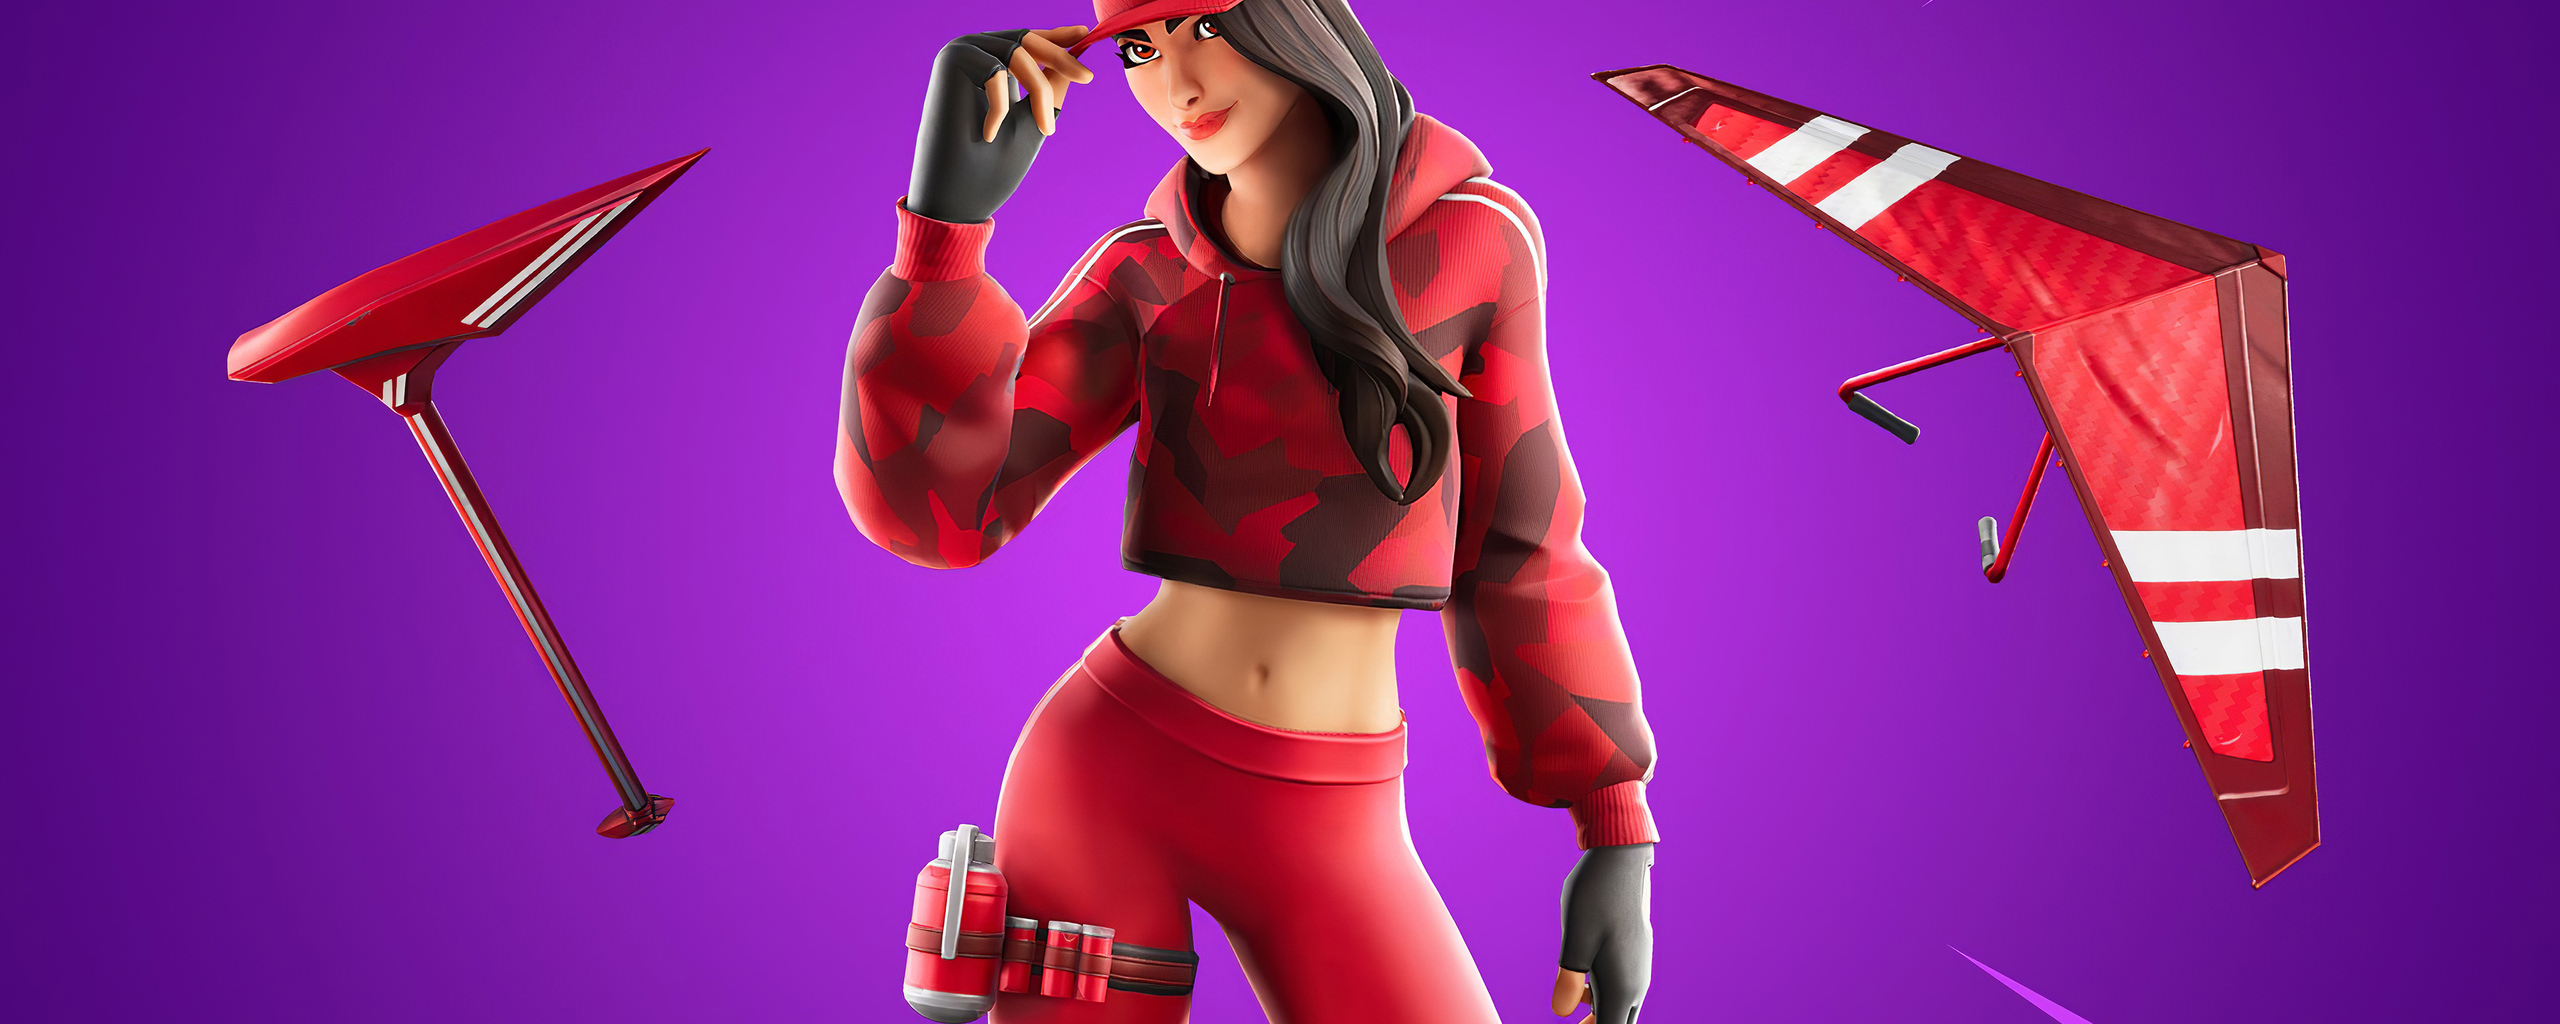 2560x1024 Fortnite Chapter 2 Ruby Outfit 4k 2560x1024 Resolution Hd 4k Wallpapers Images Backgrounds Photos And Pictures